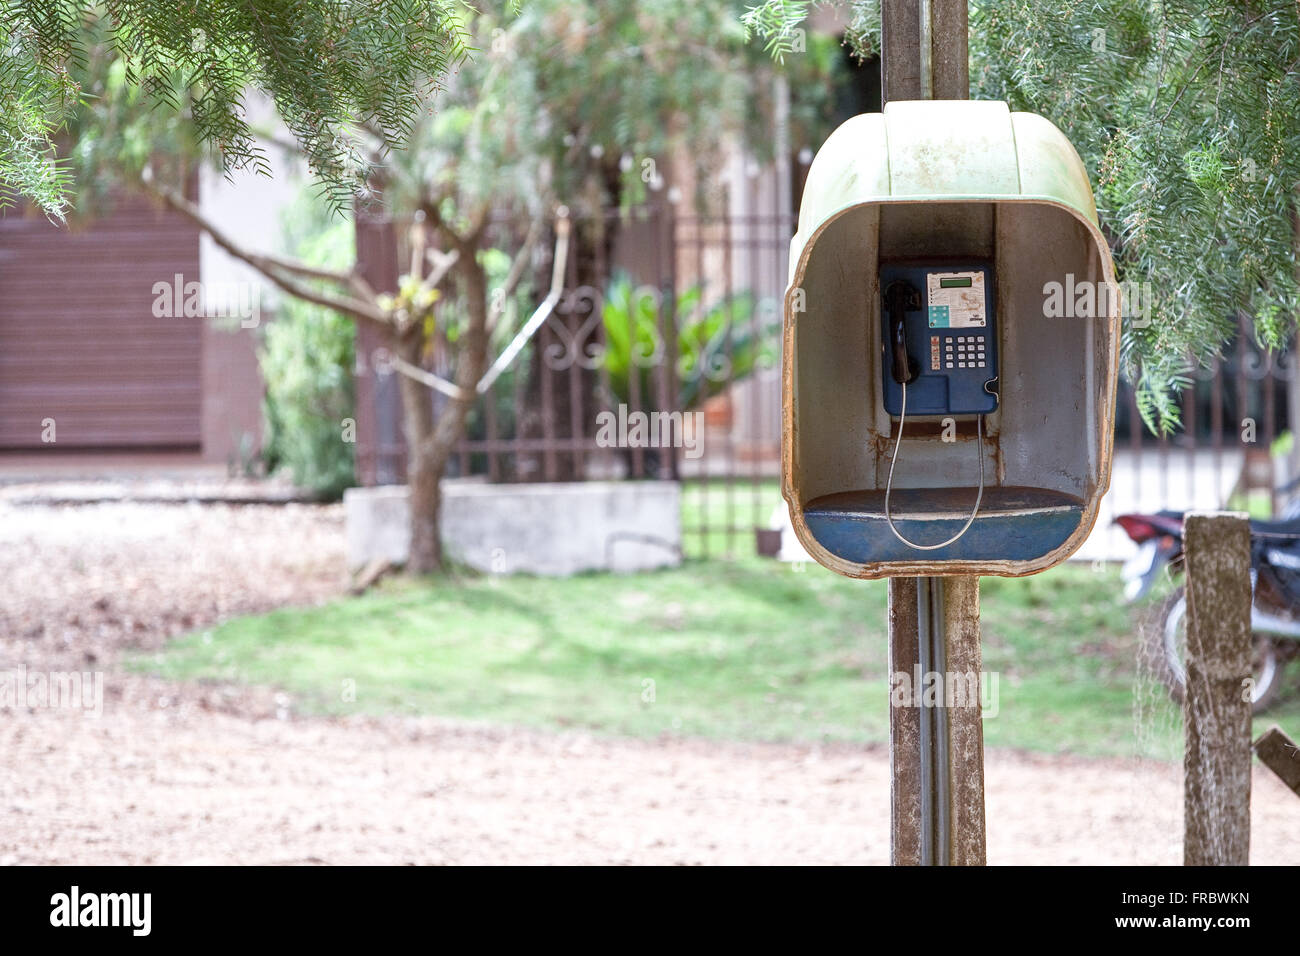 Payphone in the countryside - Stock Image